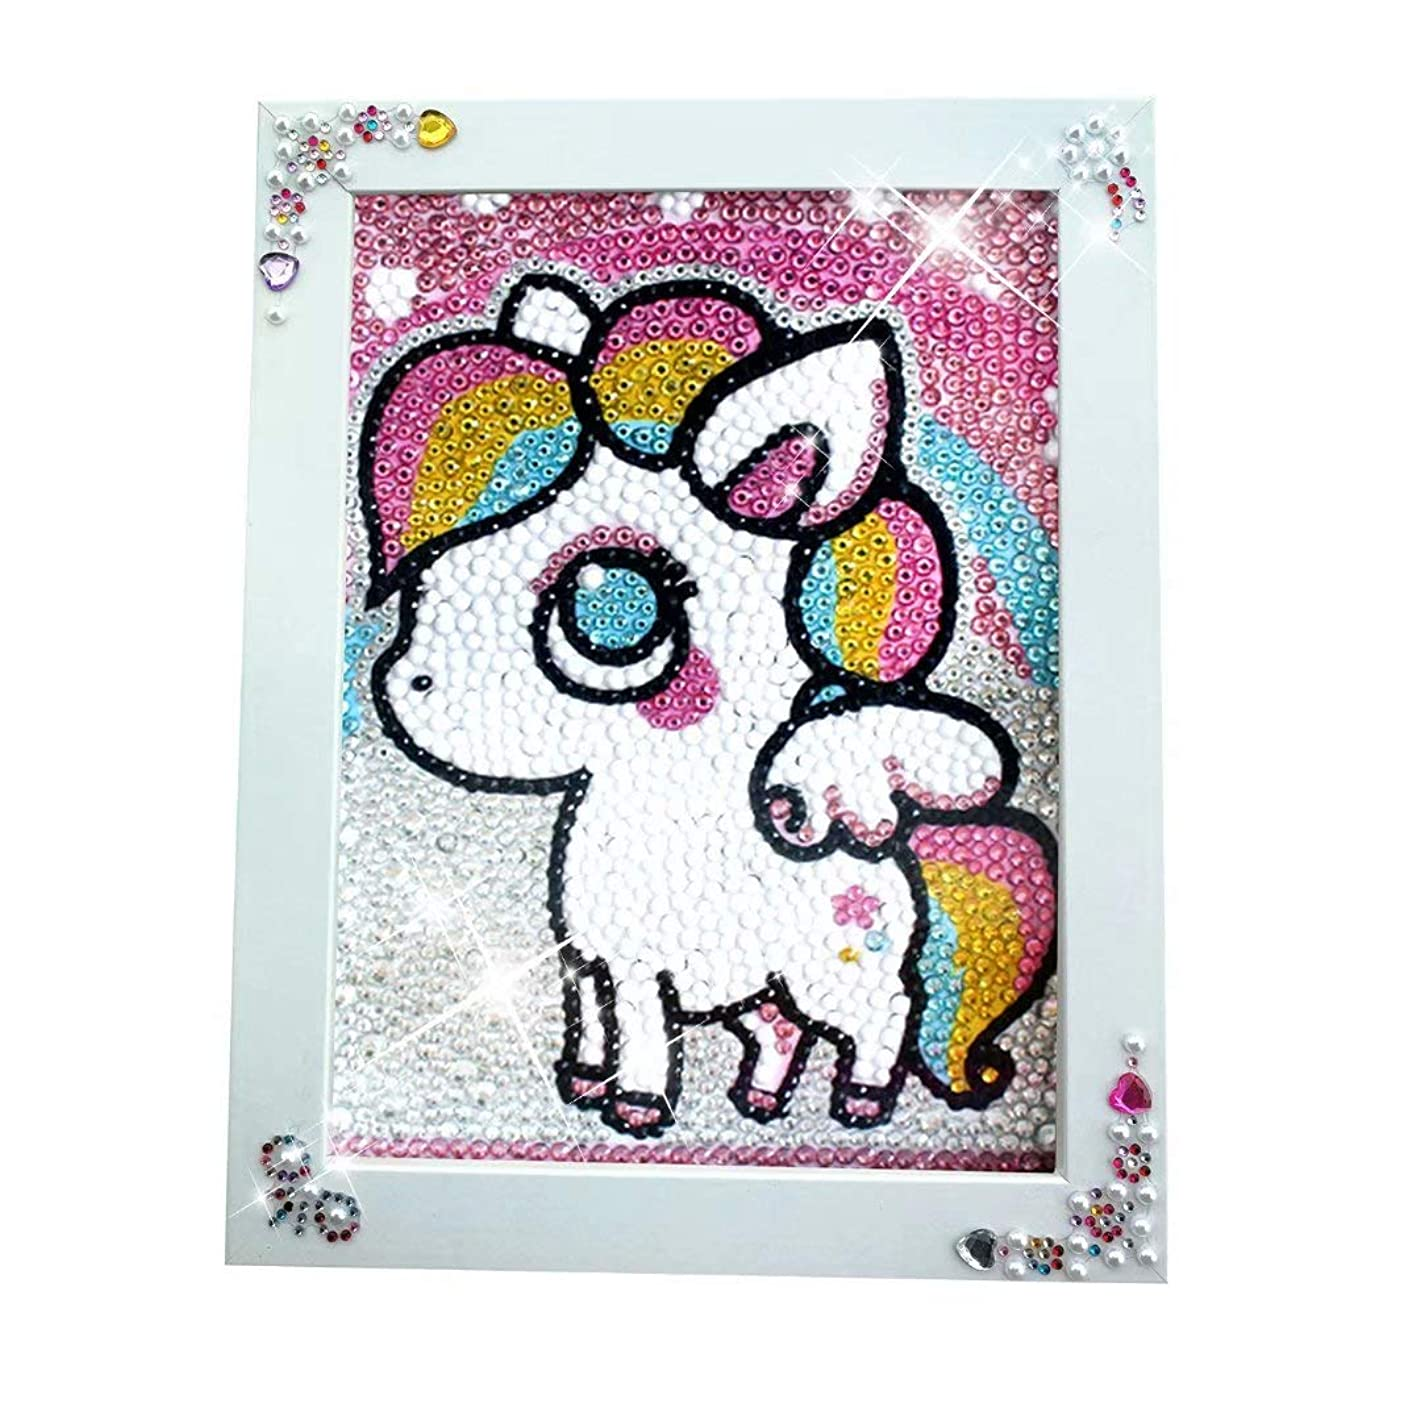 qiaoniuniu Pony Diamond Painting for Kids Full Drill Painting by Number Kits , Unicorn Toys, Arts Crafts Hobby Supply Set, Rhinestone Mosaic Making Gifts for Christmas Birthday -Include Wooden Frame